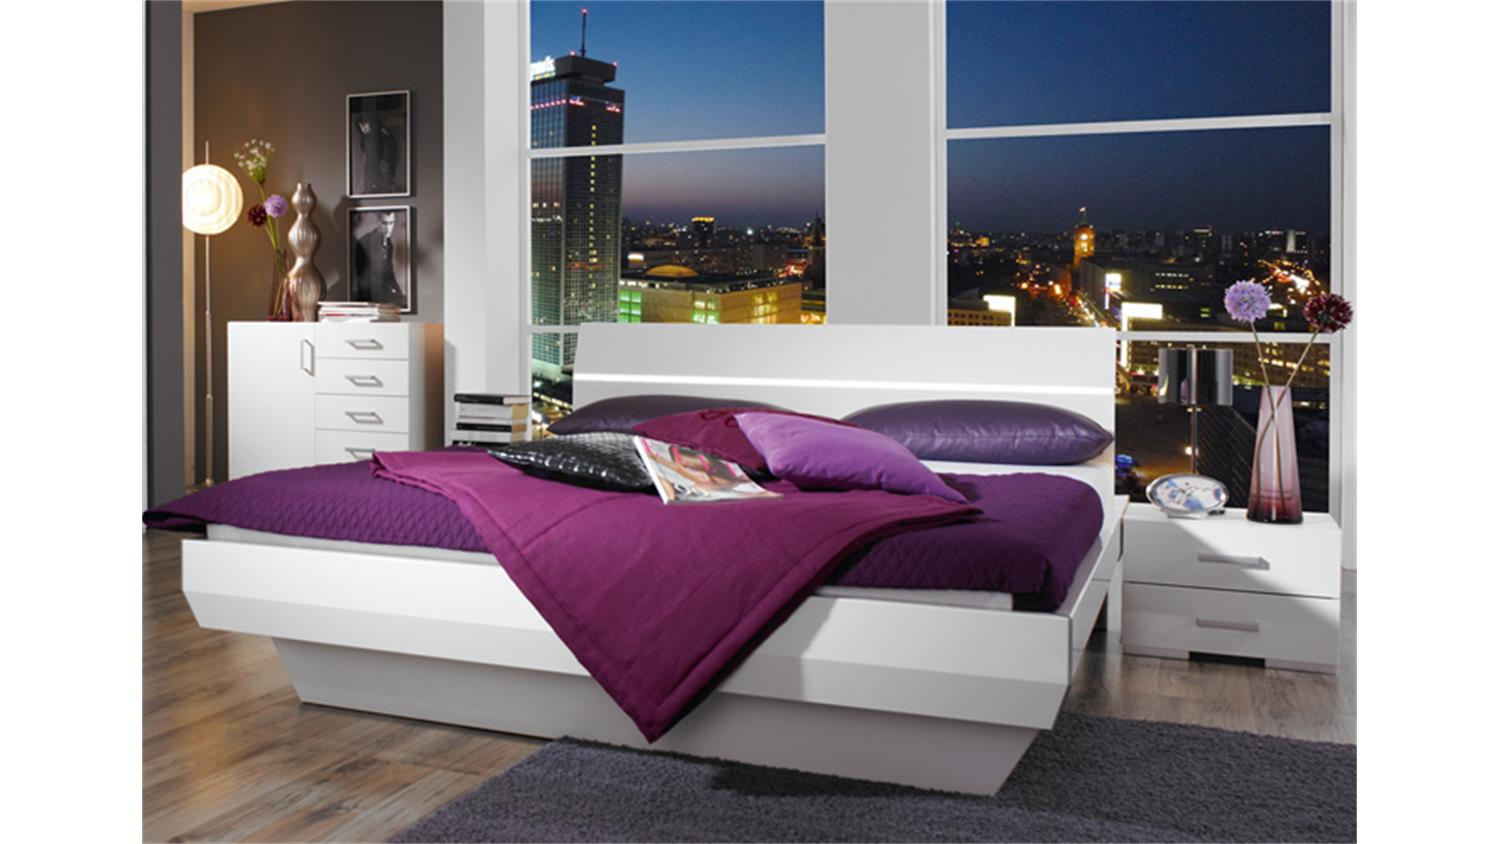 bettanlage tira wei hochglanz bett mit zwei nachtkonsolen. Black Bedroom Furniture Sets. Home Design Ideas